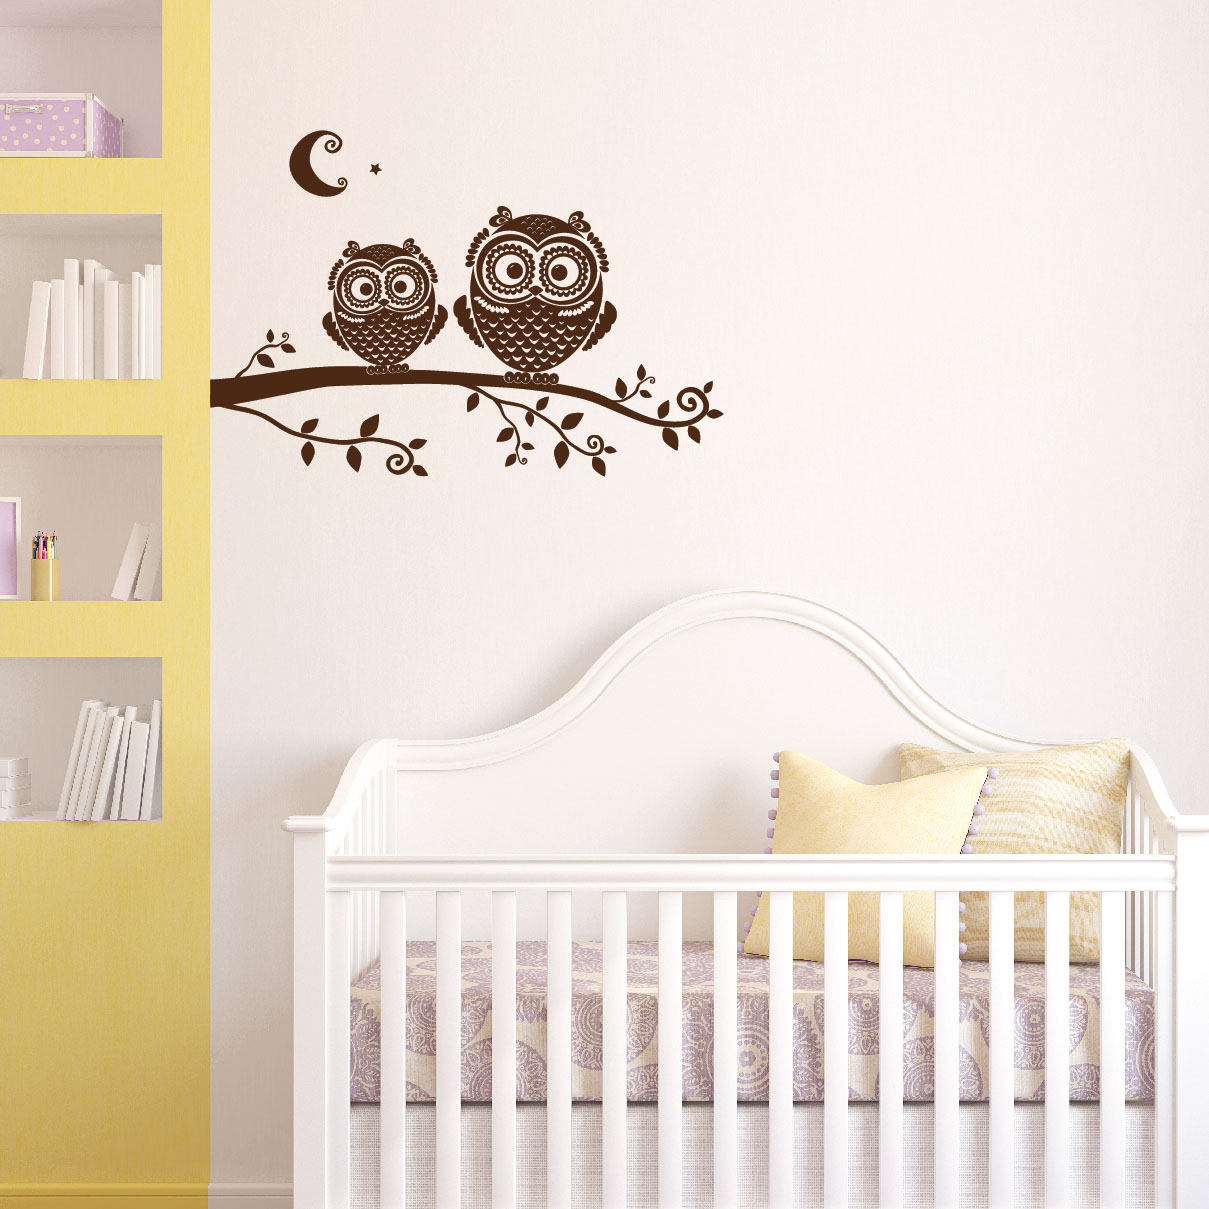 1278-owl-branch-decal-nursery-brown.jpg